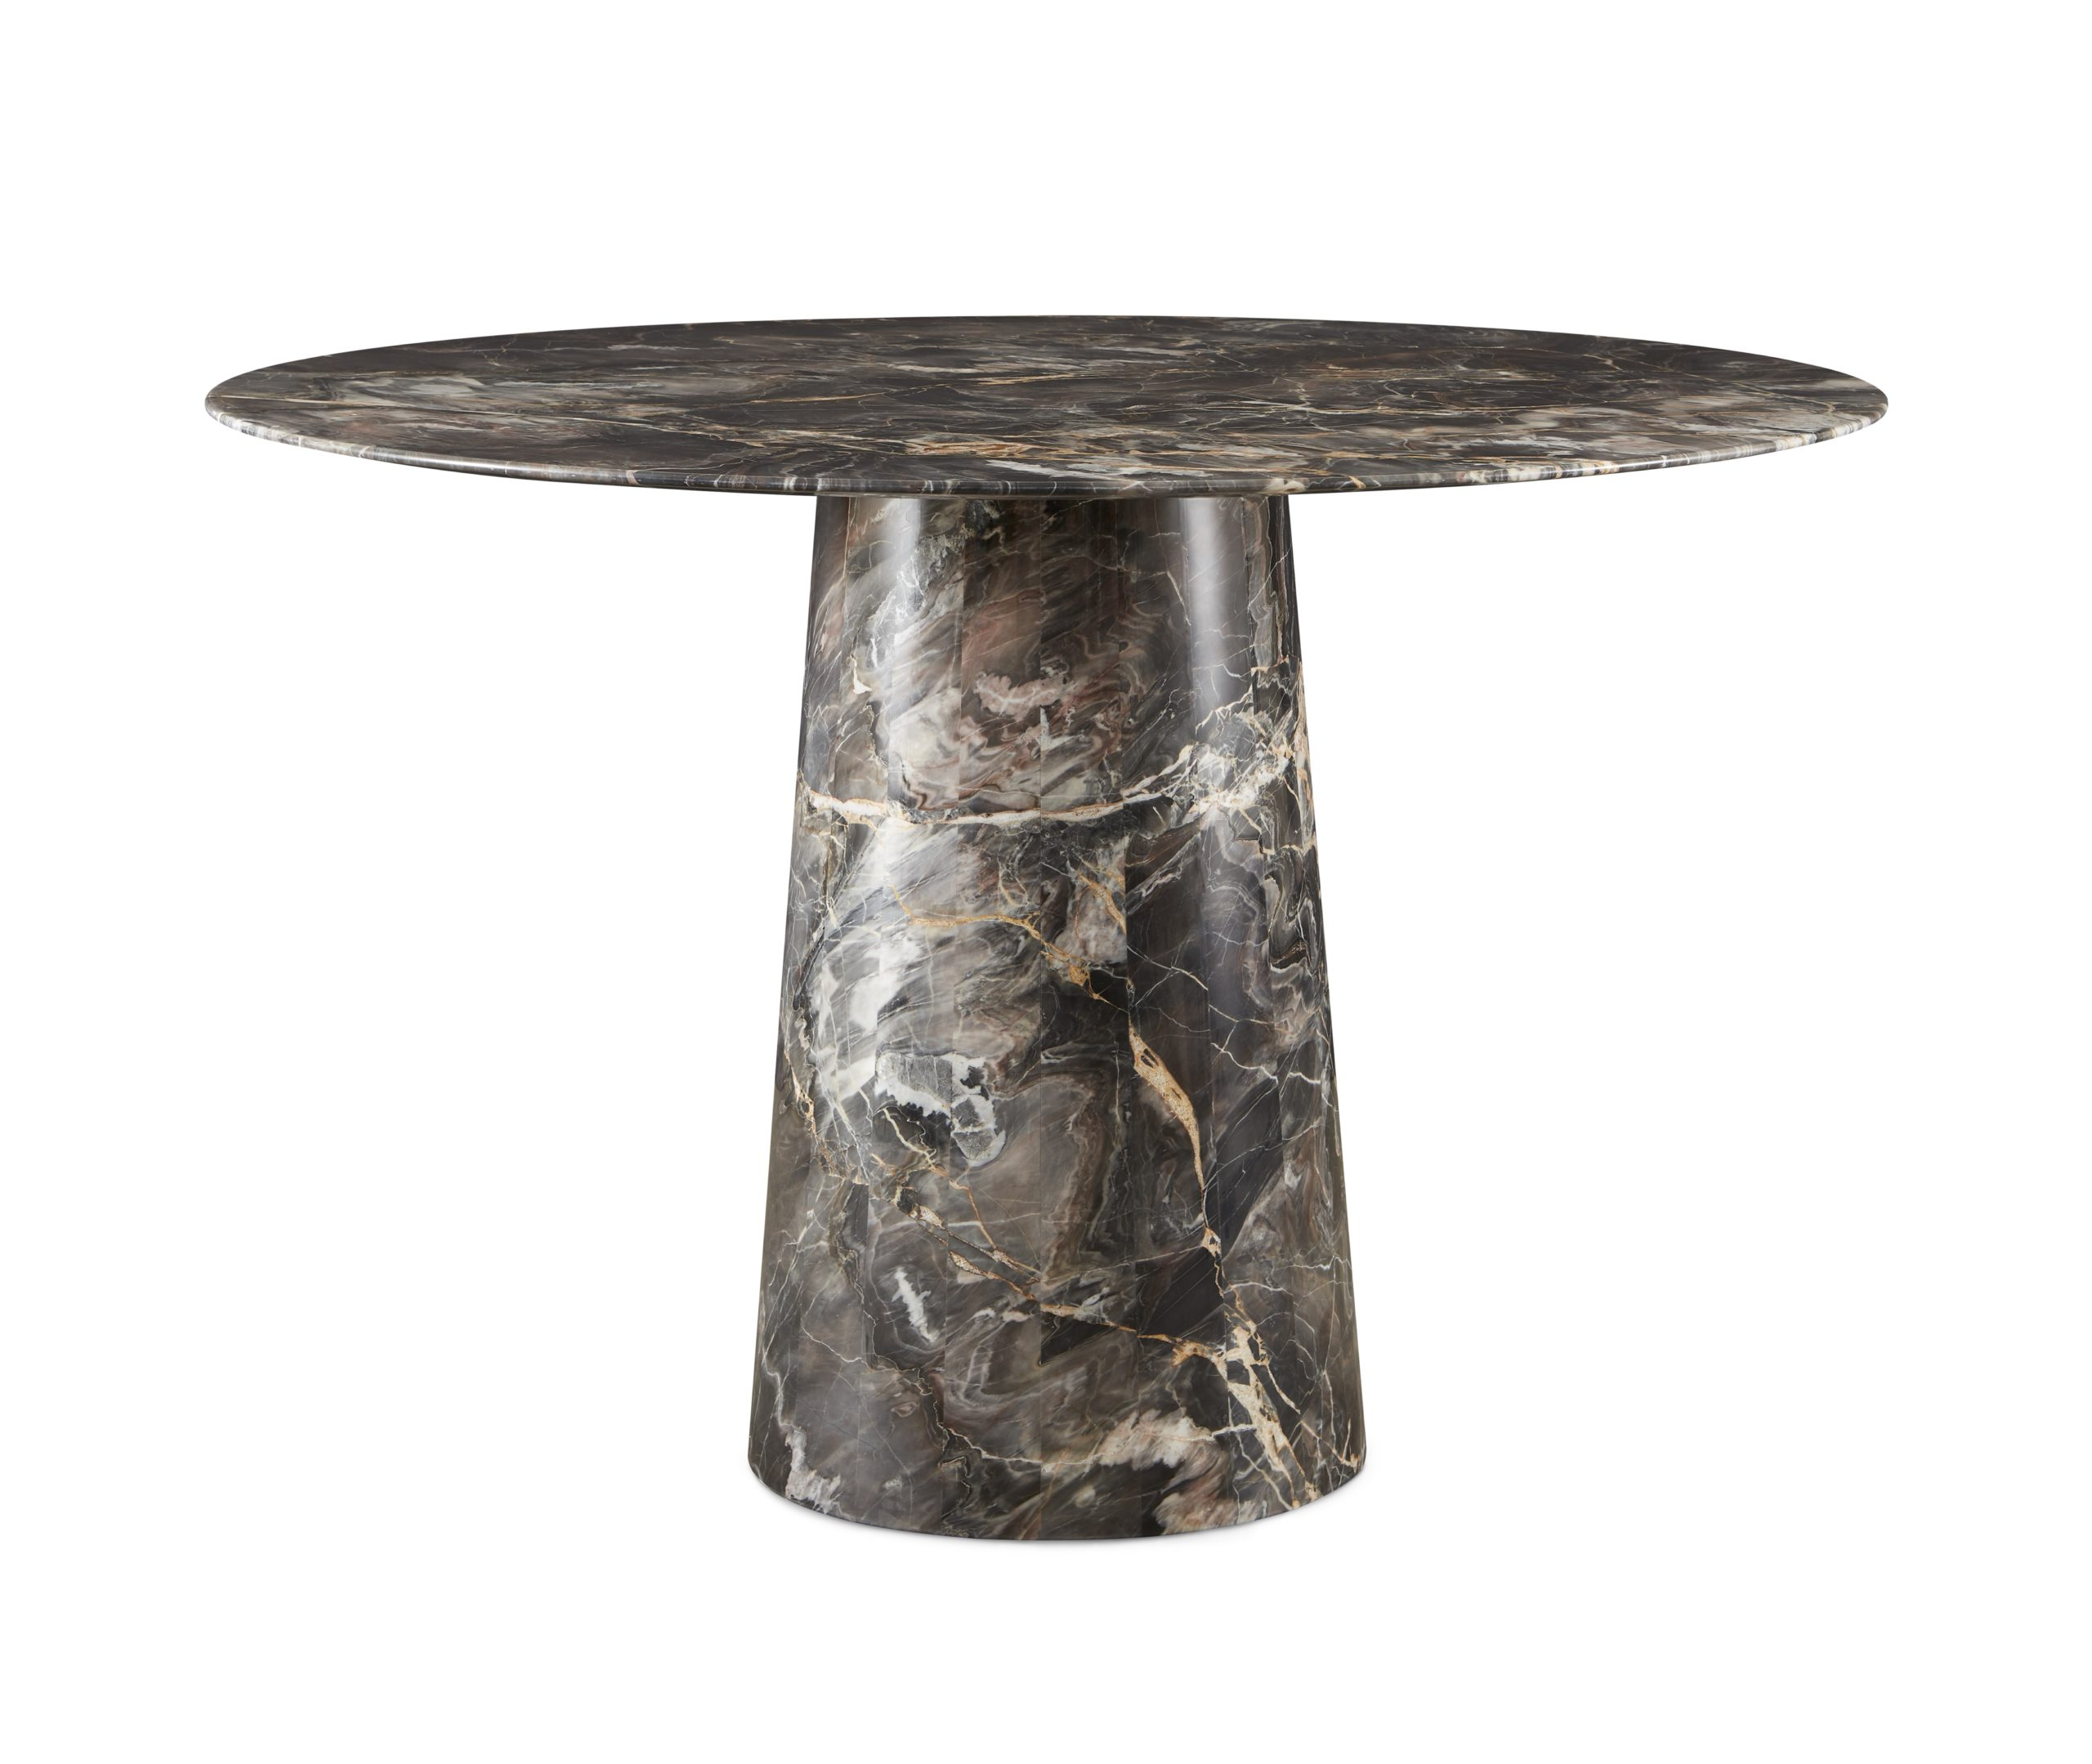 Baker_products_WNWN_adeline_table_BAA3235_FRONT-scaled-6